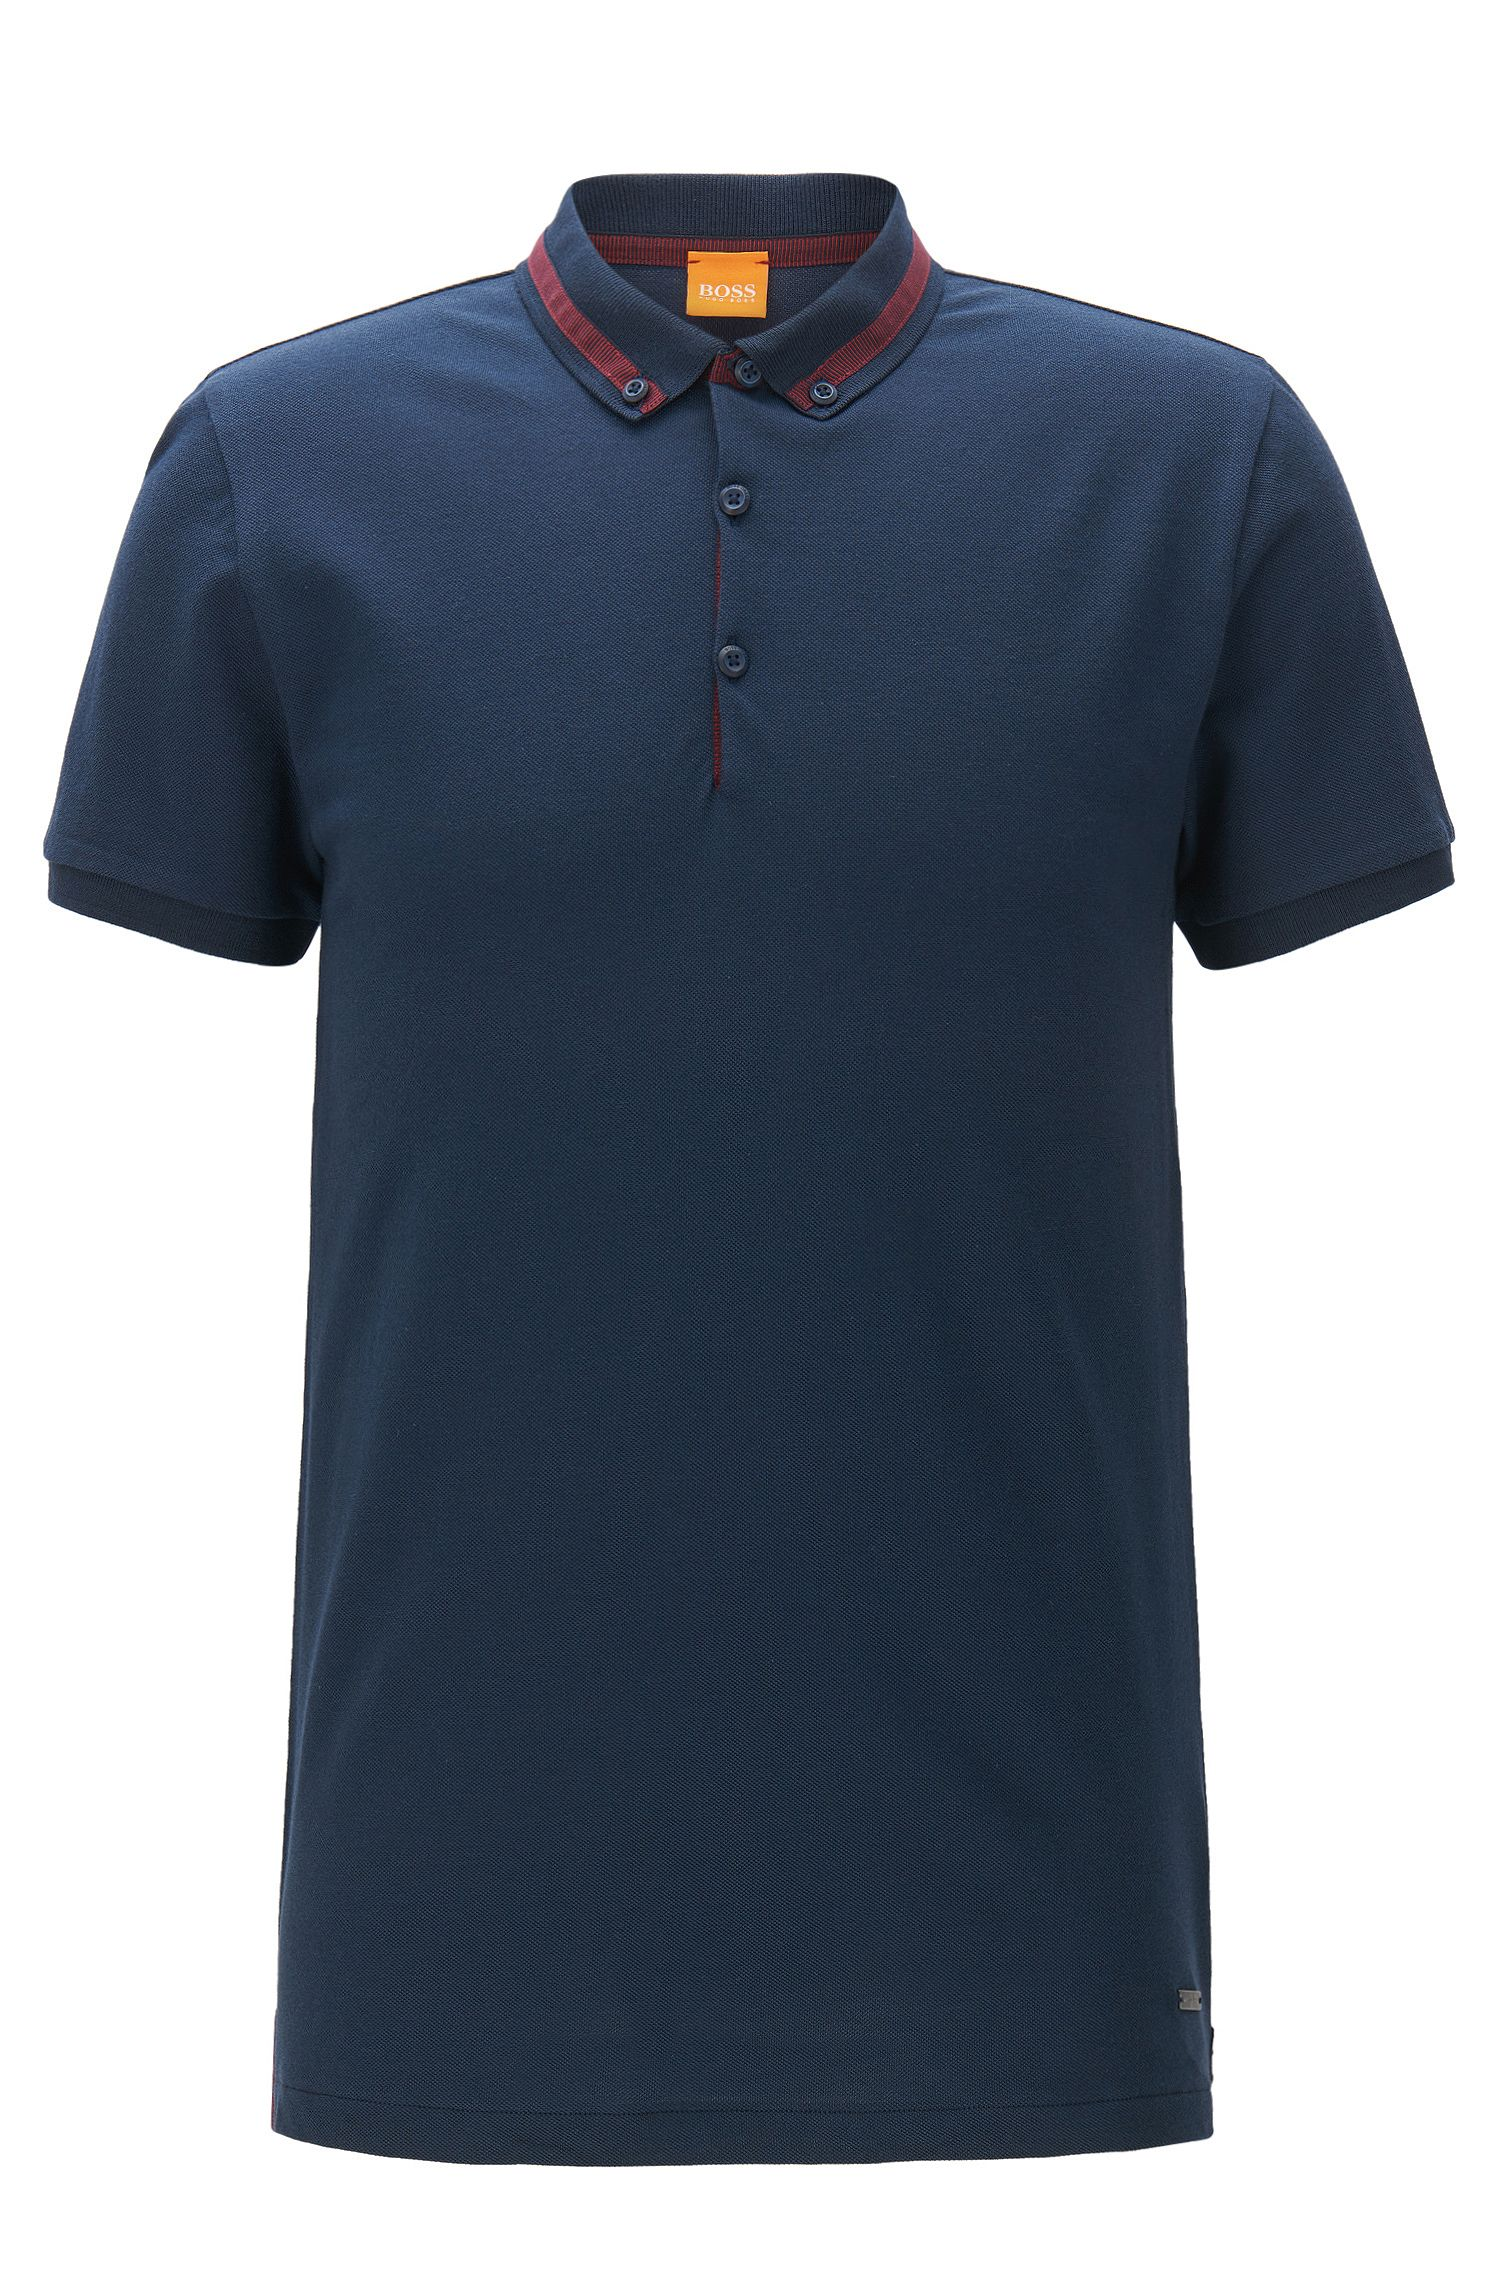 Cotton Piqué Polo Shirt, Regular Fit | Pejo